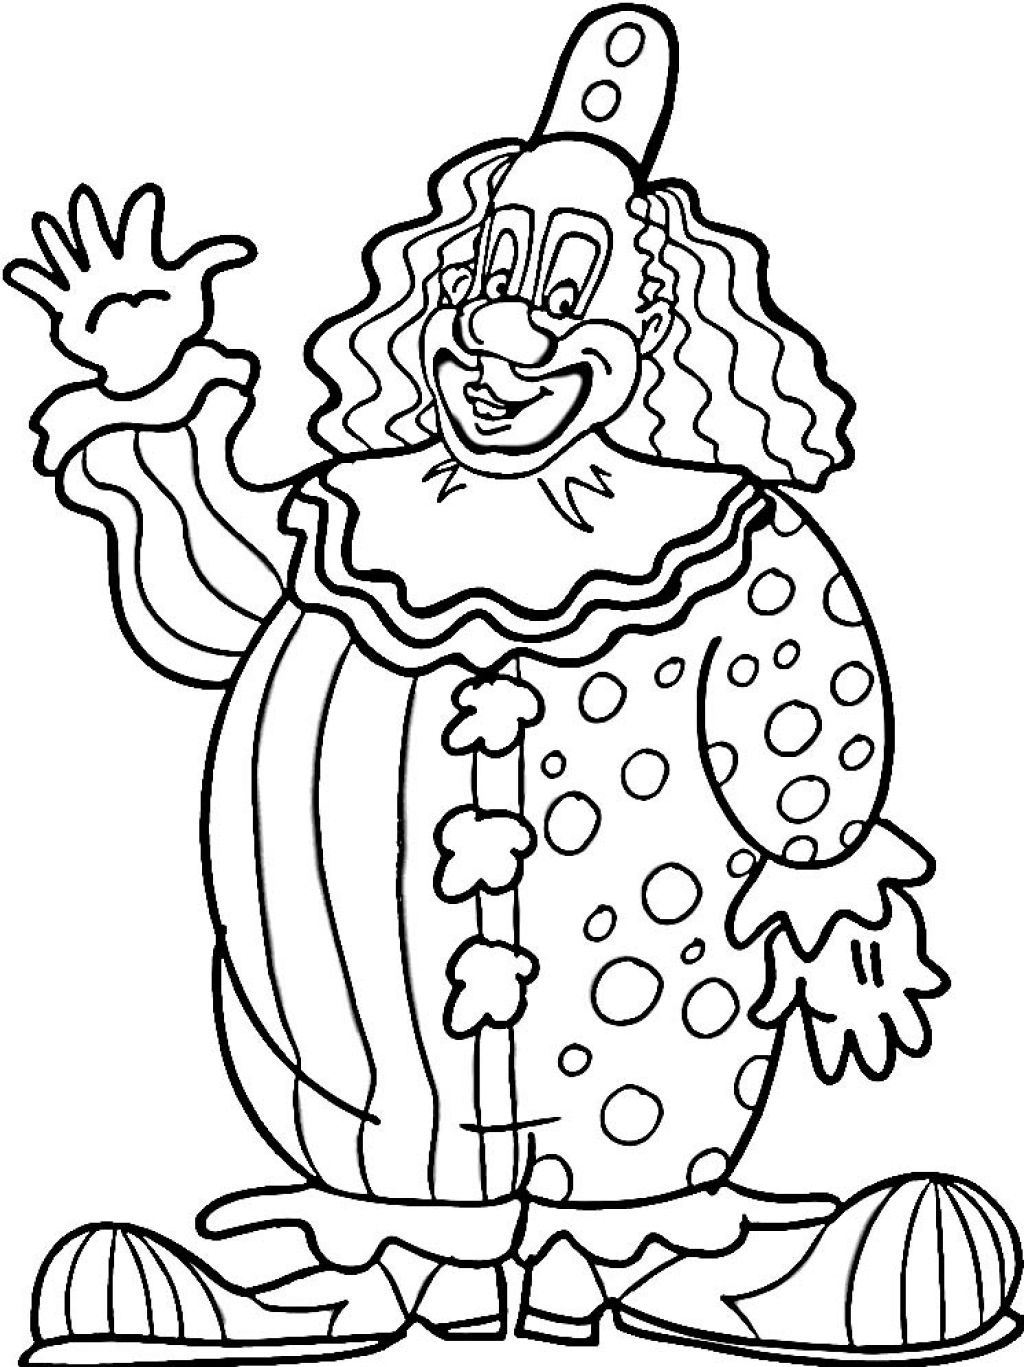 Clown coloring pictures to print coloring page for Printable circus coloring pages